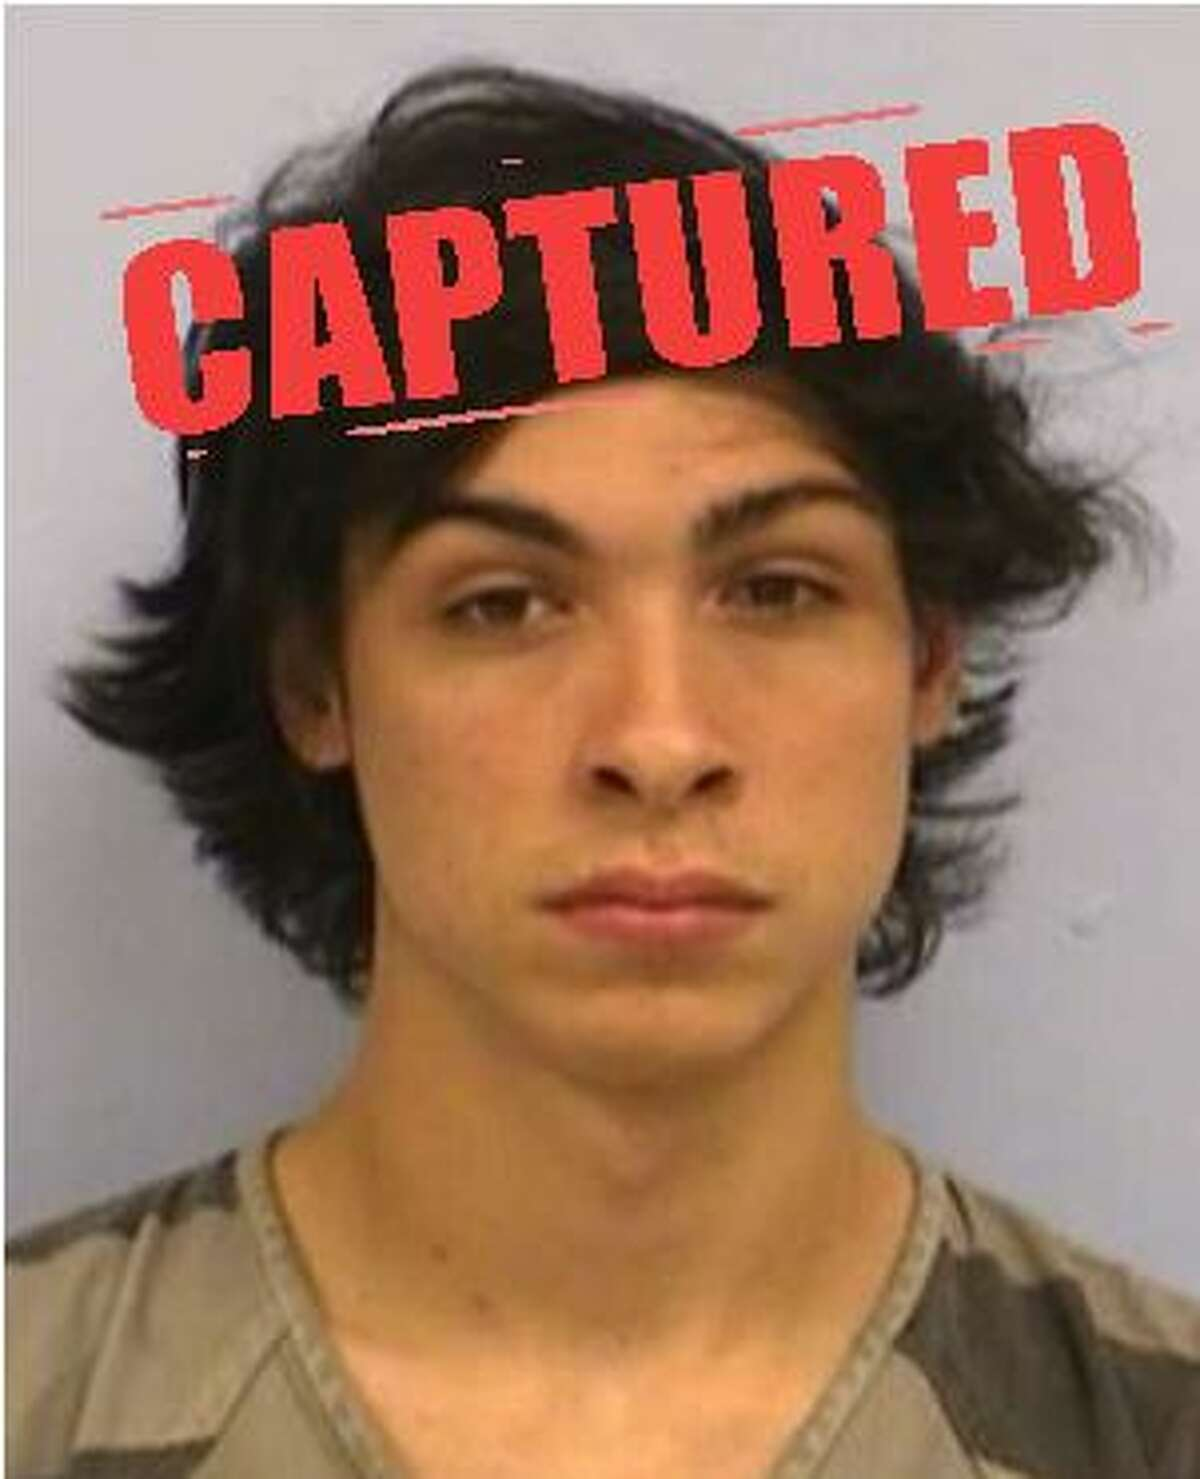 Jefferey Paige was arrested in Austin on May 9 after being placed on the Texas 10 Most Wanted Sex Offender List.